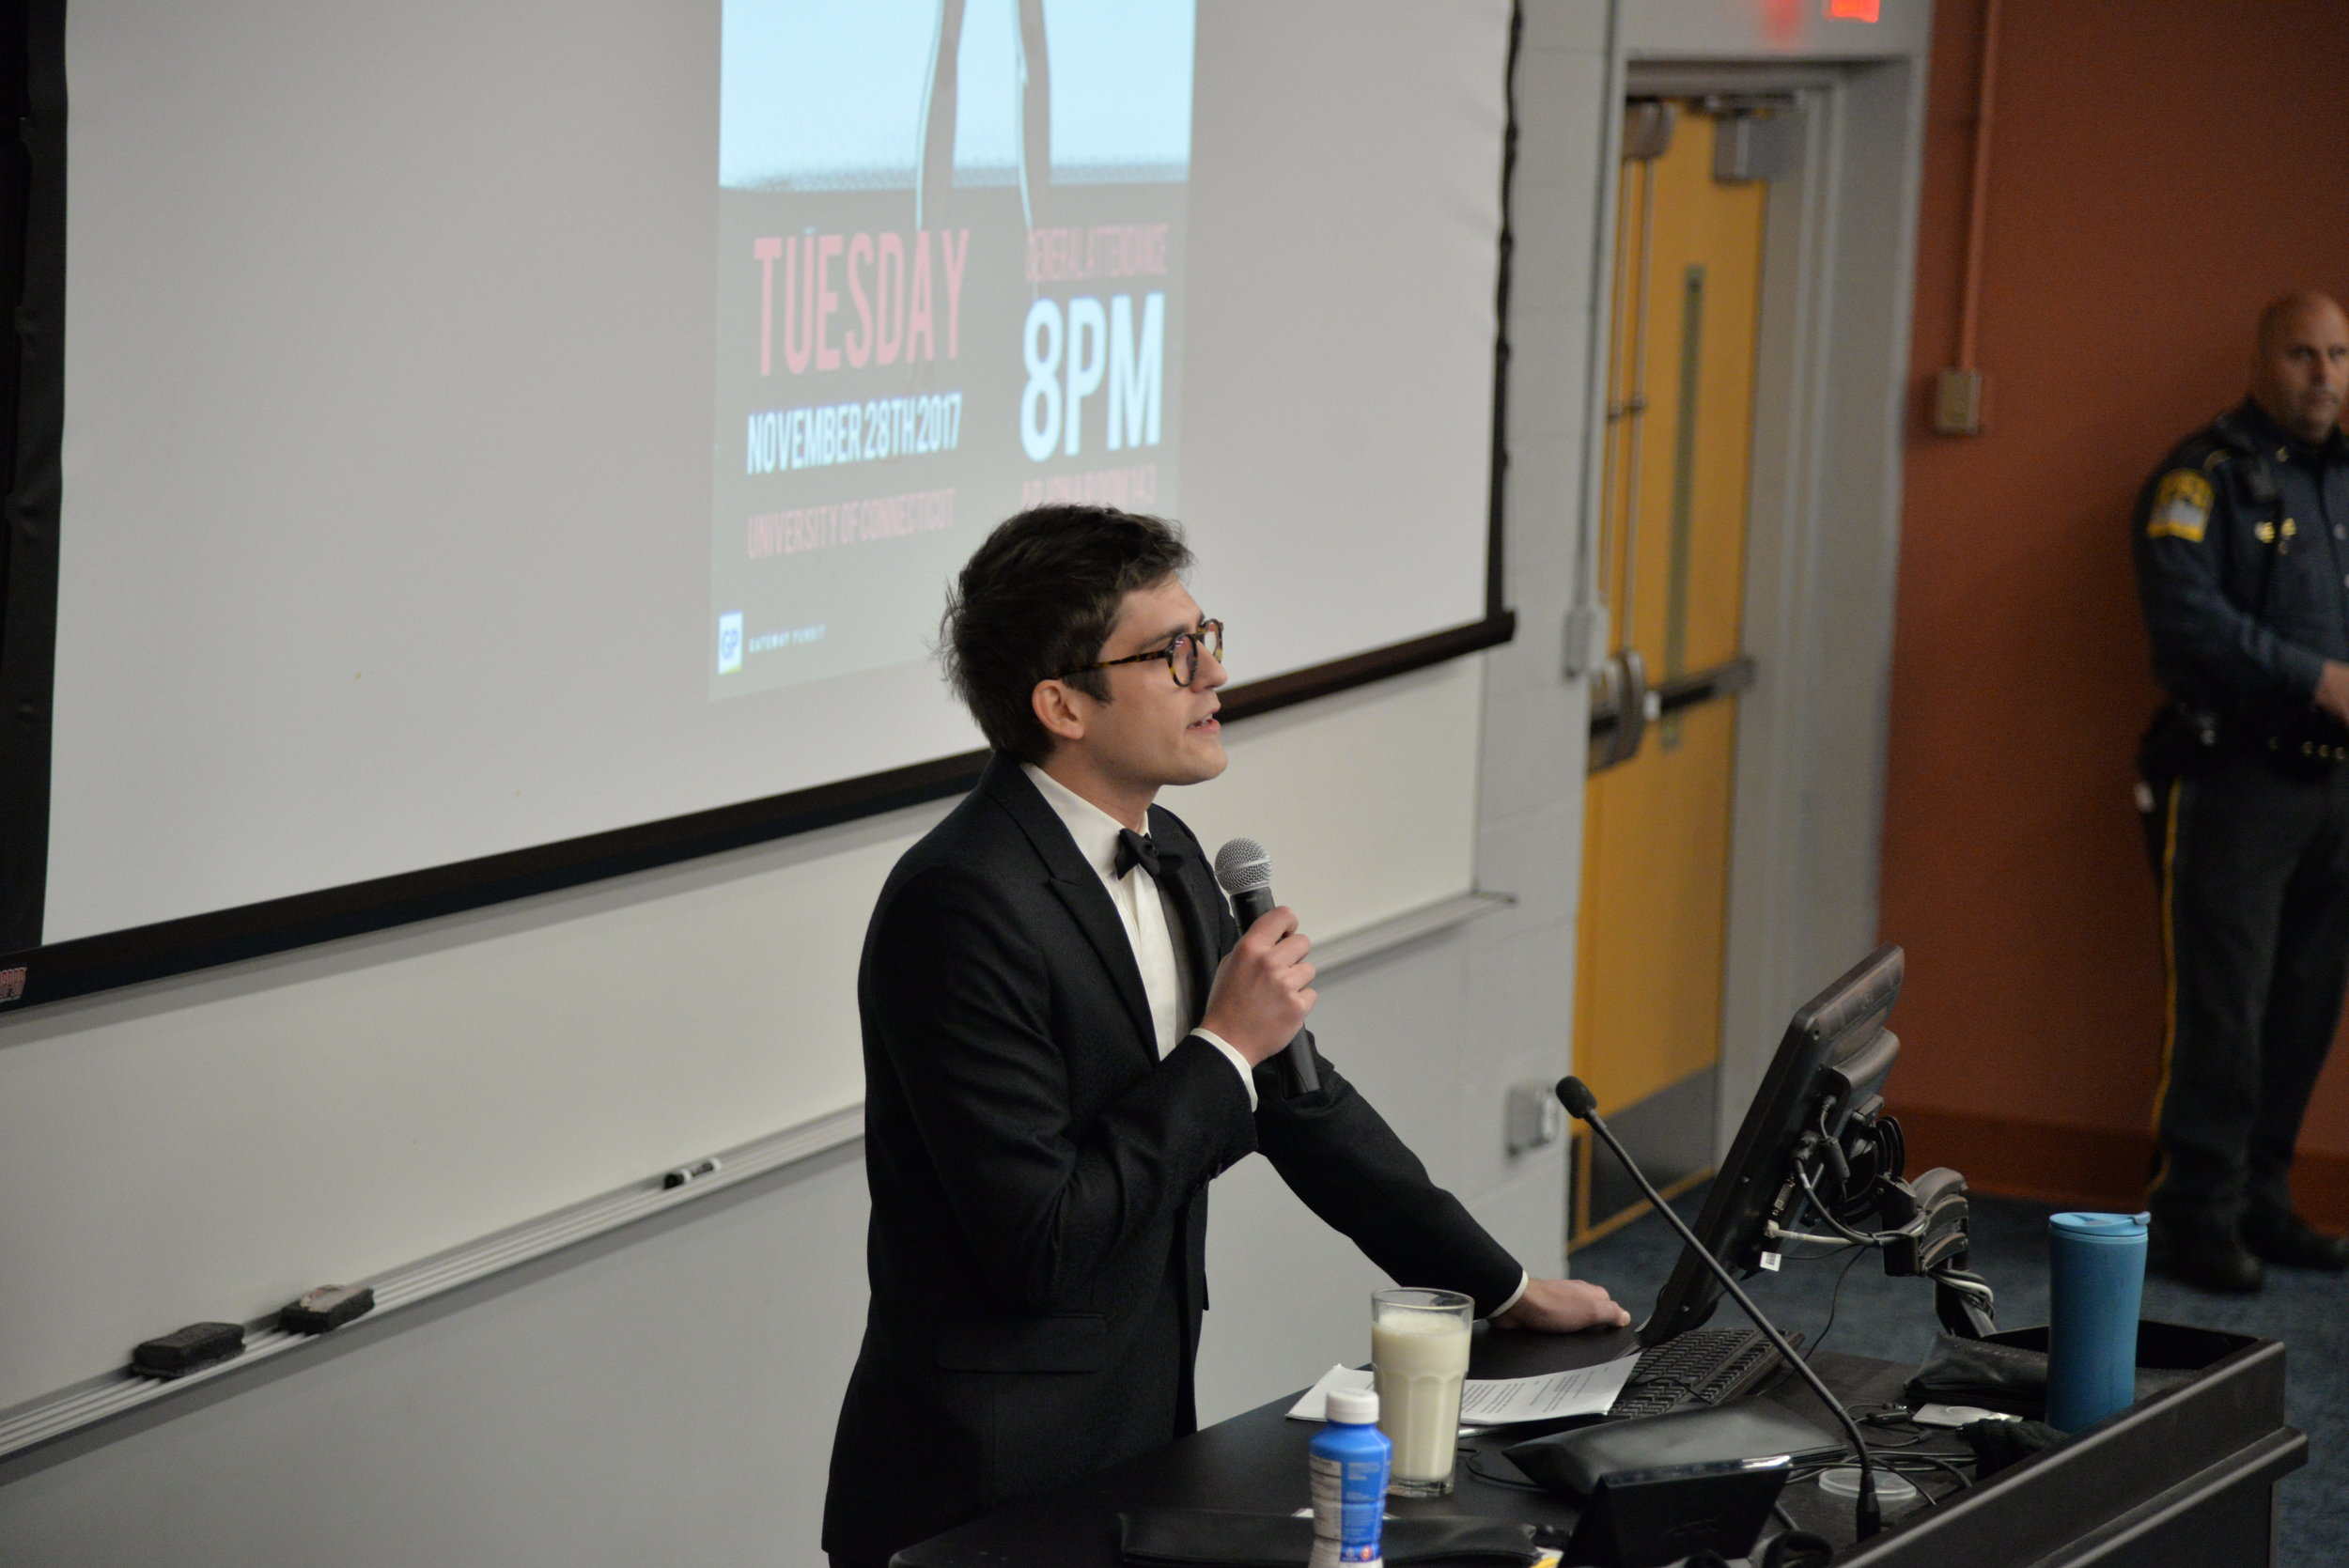 Wintrich began his presentation with a slideshow and anecdotal story. (Amar Batra/The Daily Campus)